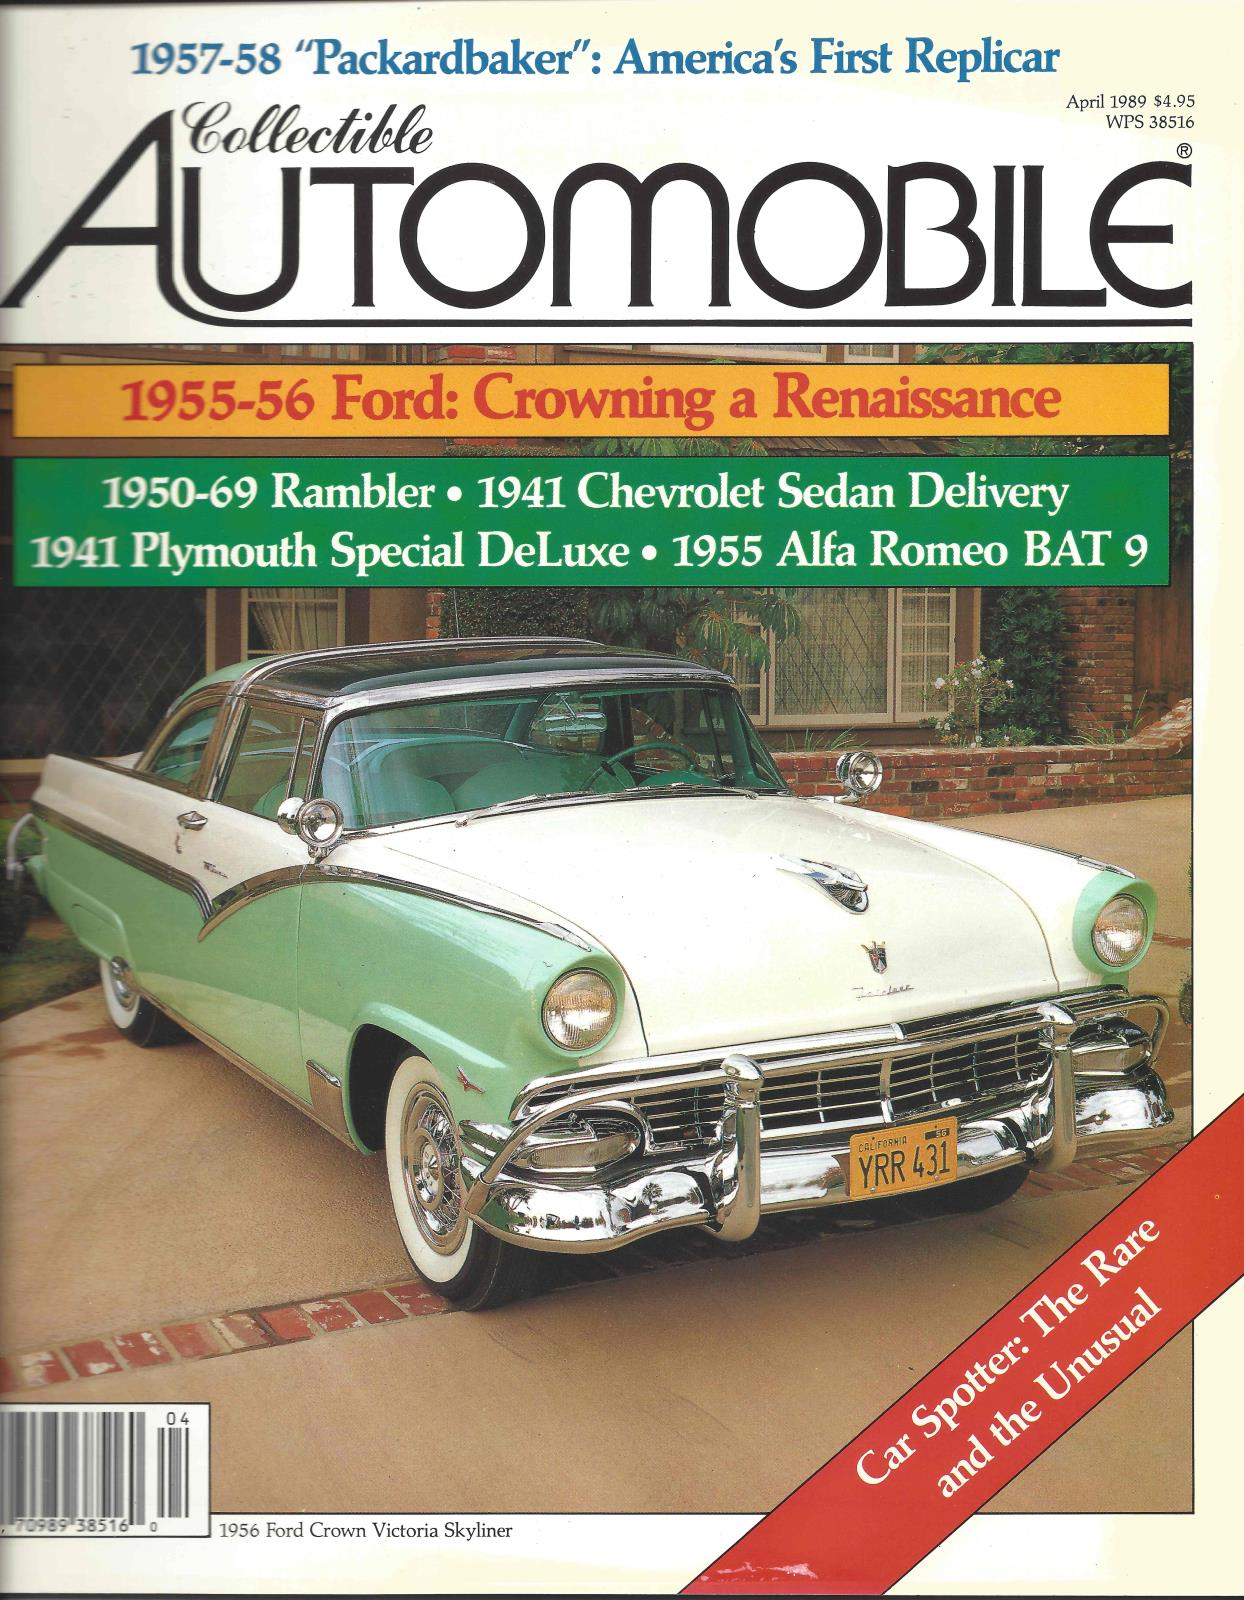 Untitled 1 1950 To 1955 Plymouth Cars 1941 Deluxe Convertible 4 Pages